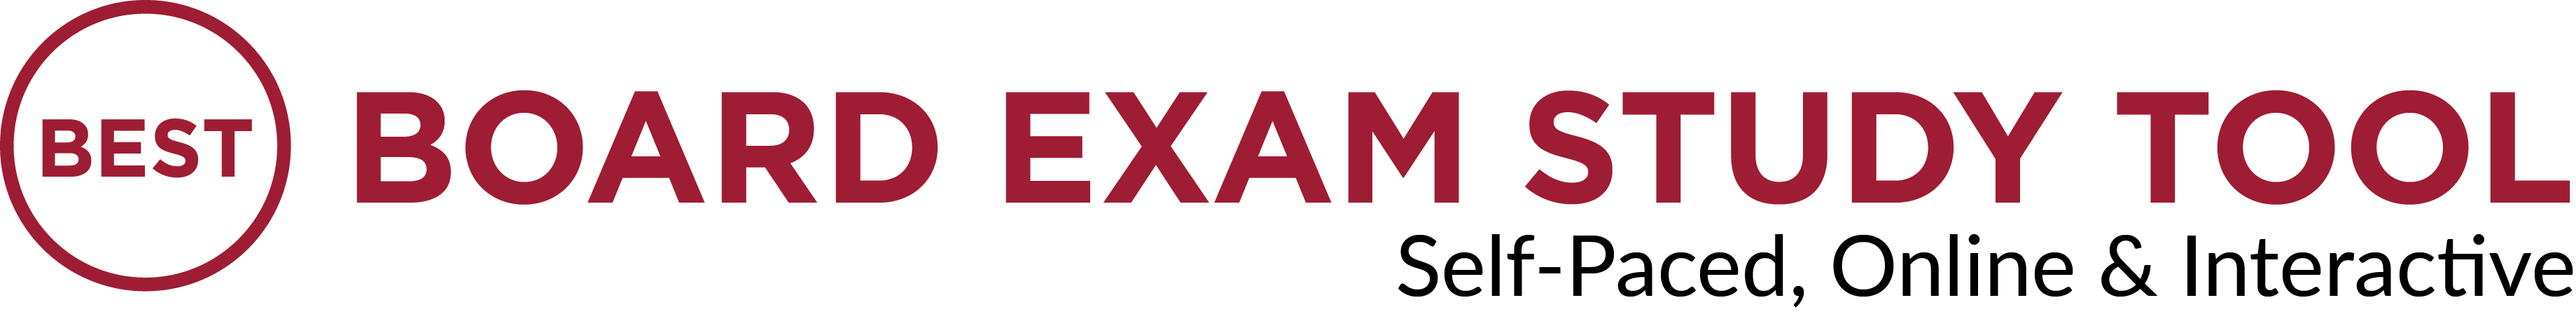 Asam Elearning Board Exam Study Tool Best 2018 12 Cme